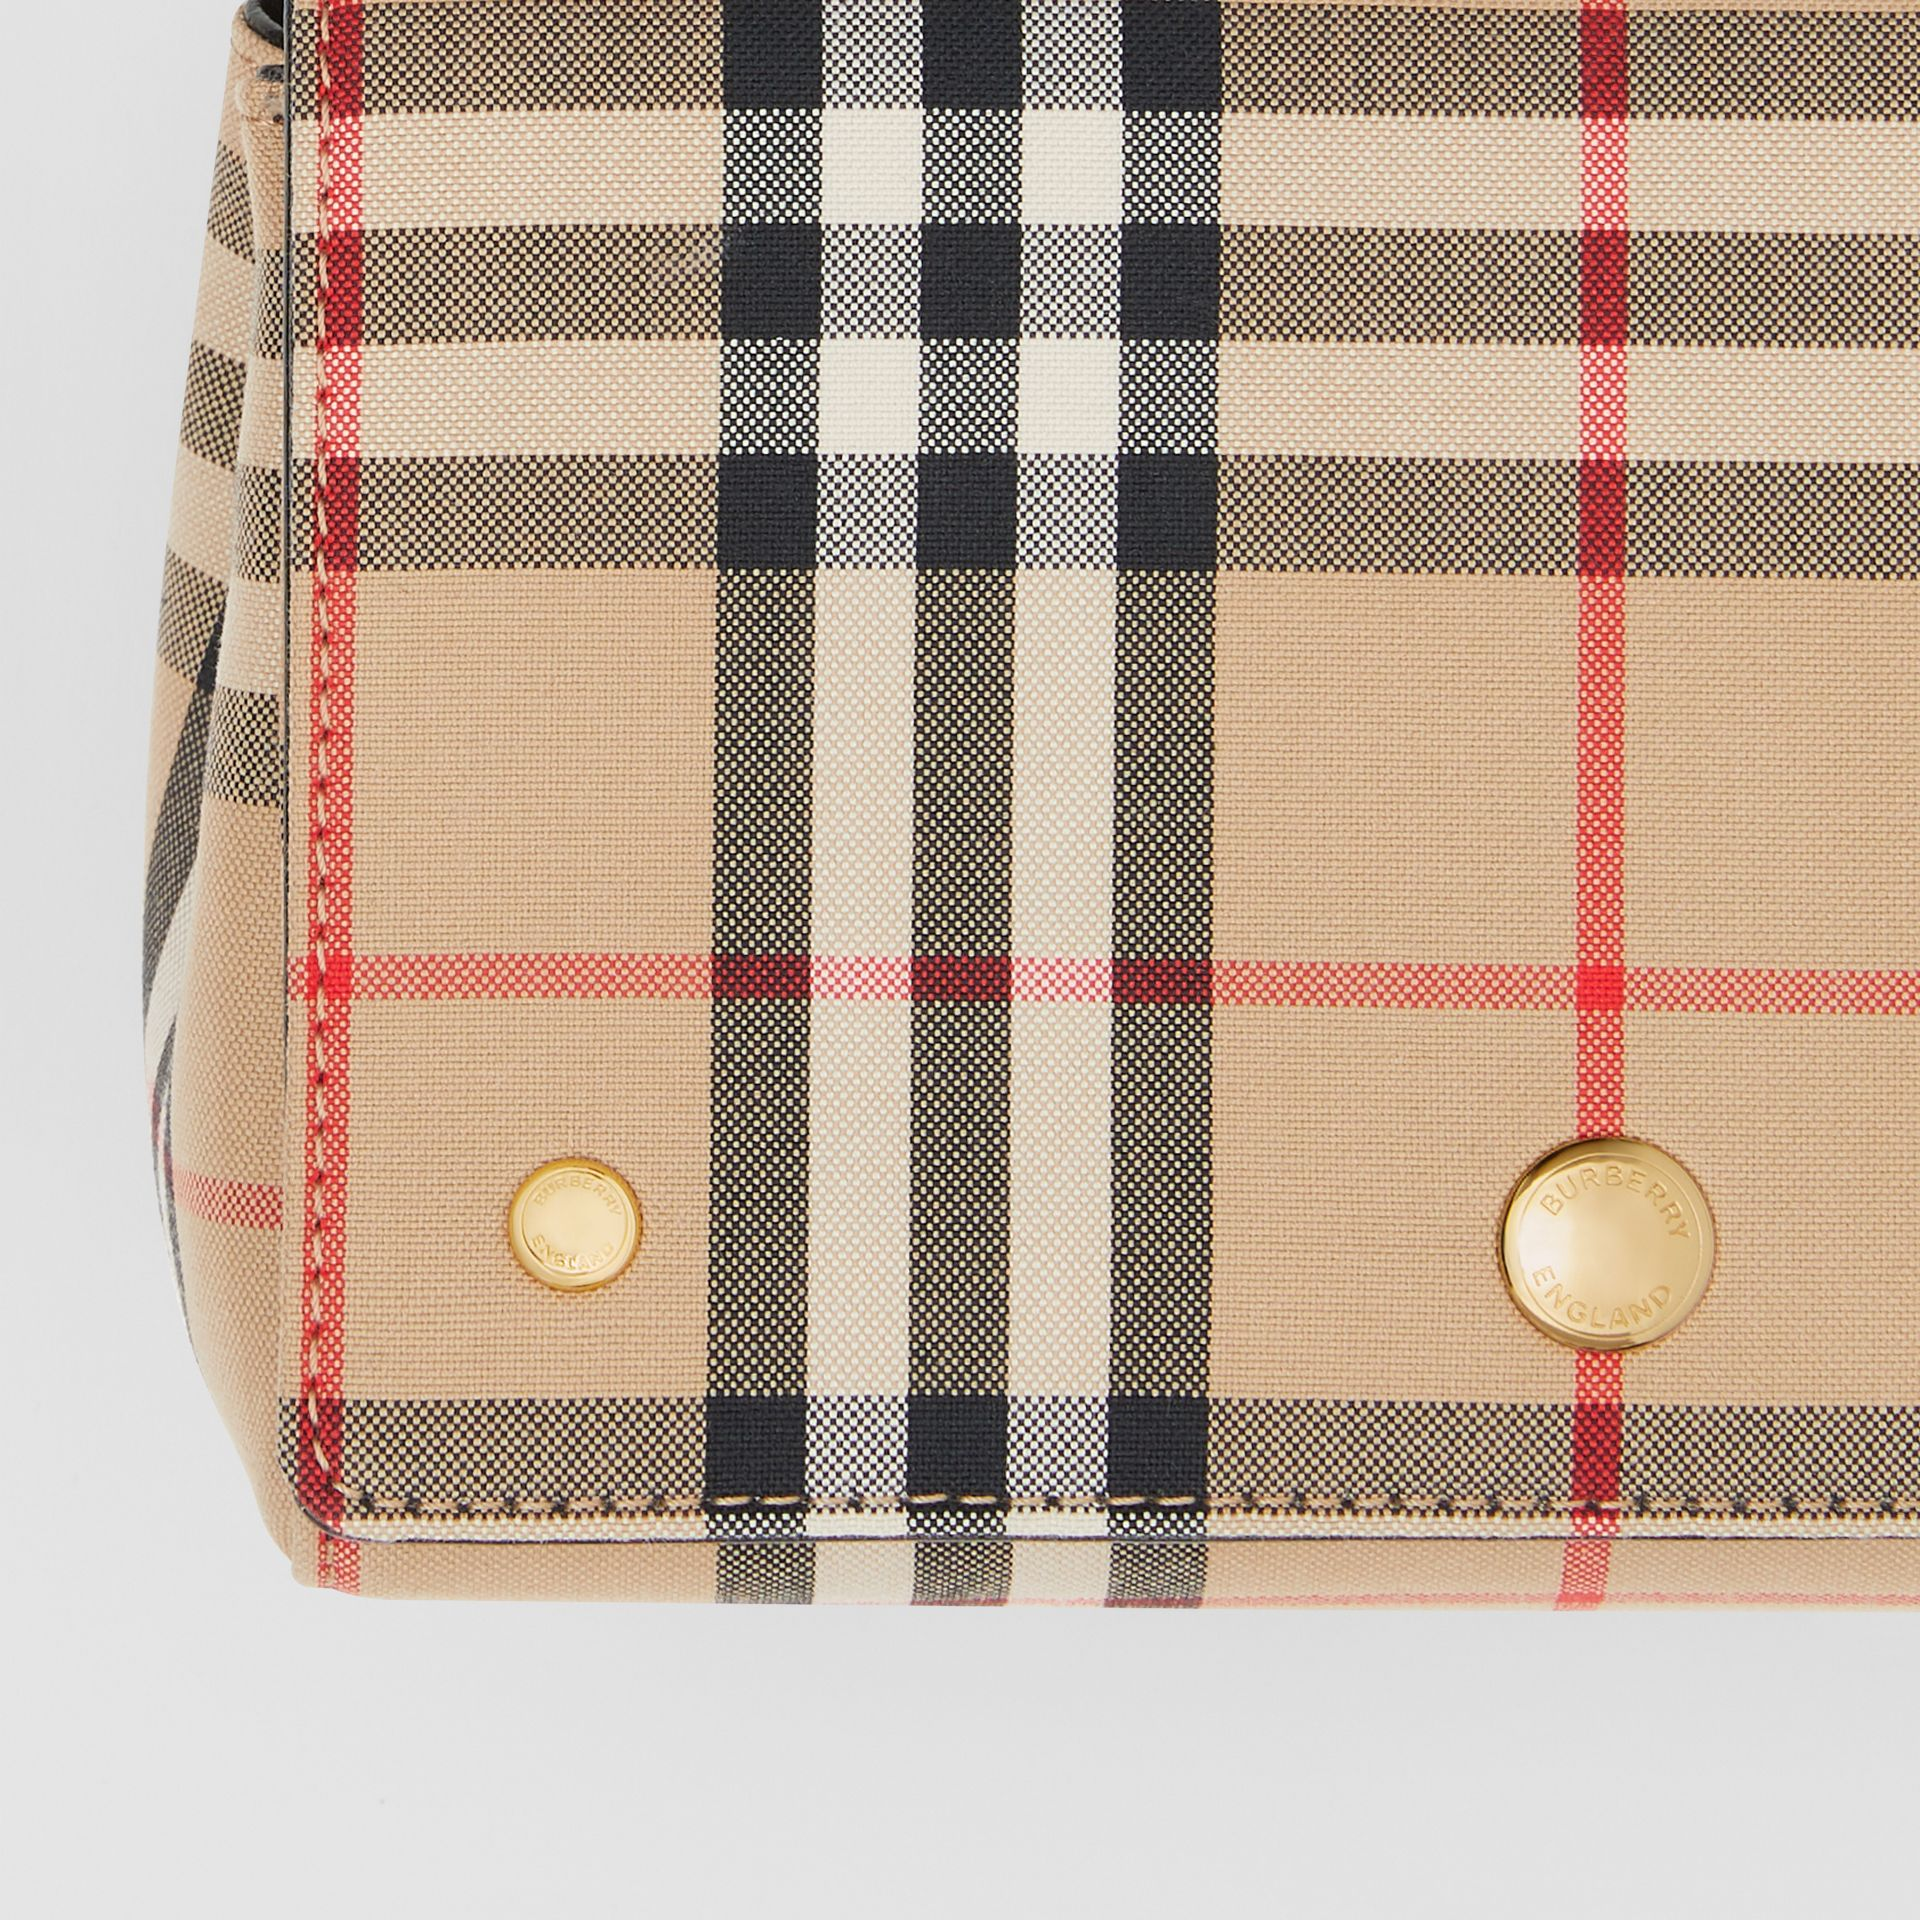 Small Vintage Check and Leather Crossbody Bag in Archive Beige/black | Burberry - gallery image 1